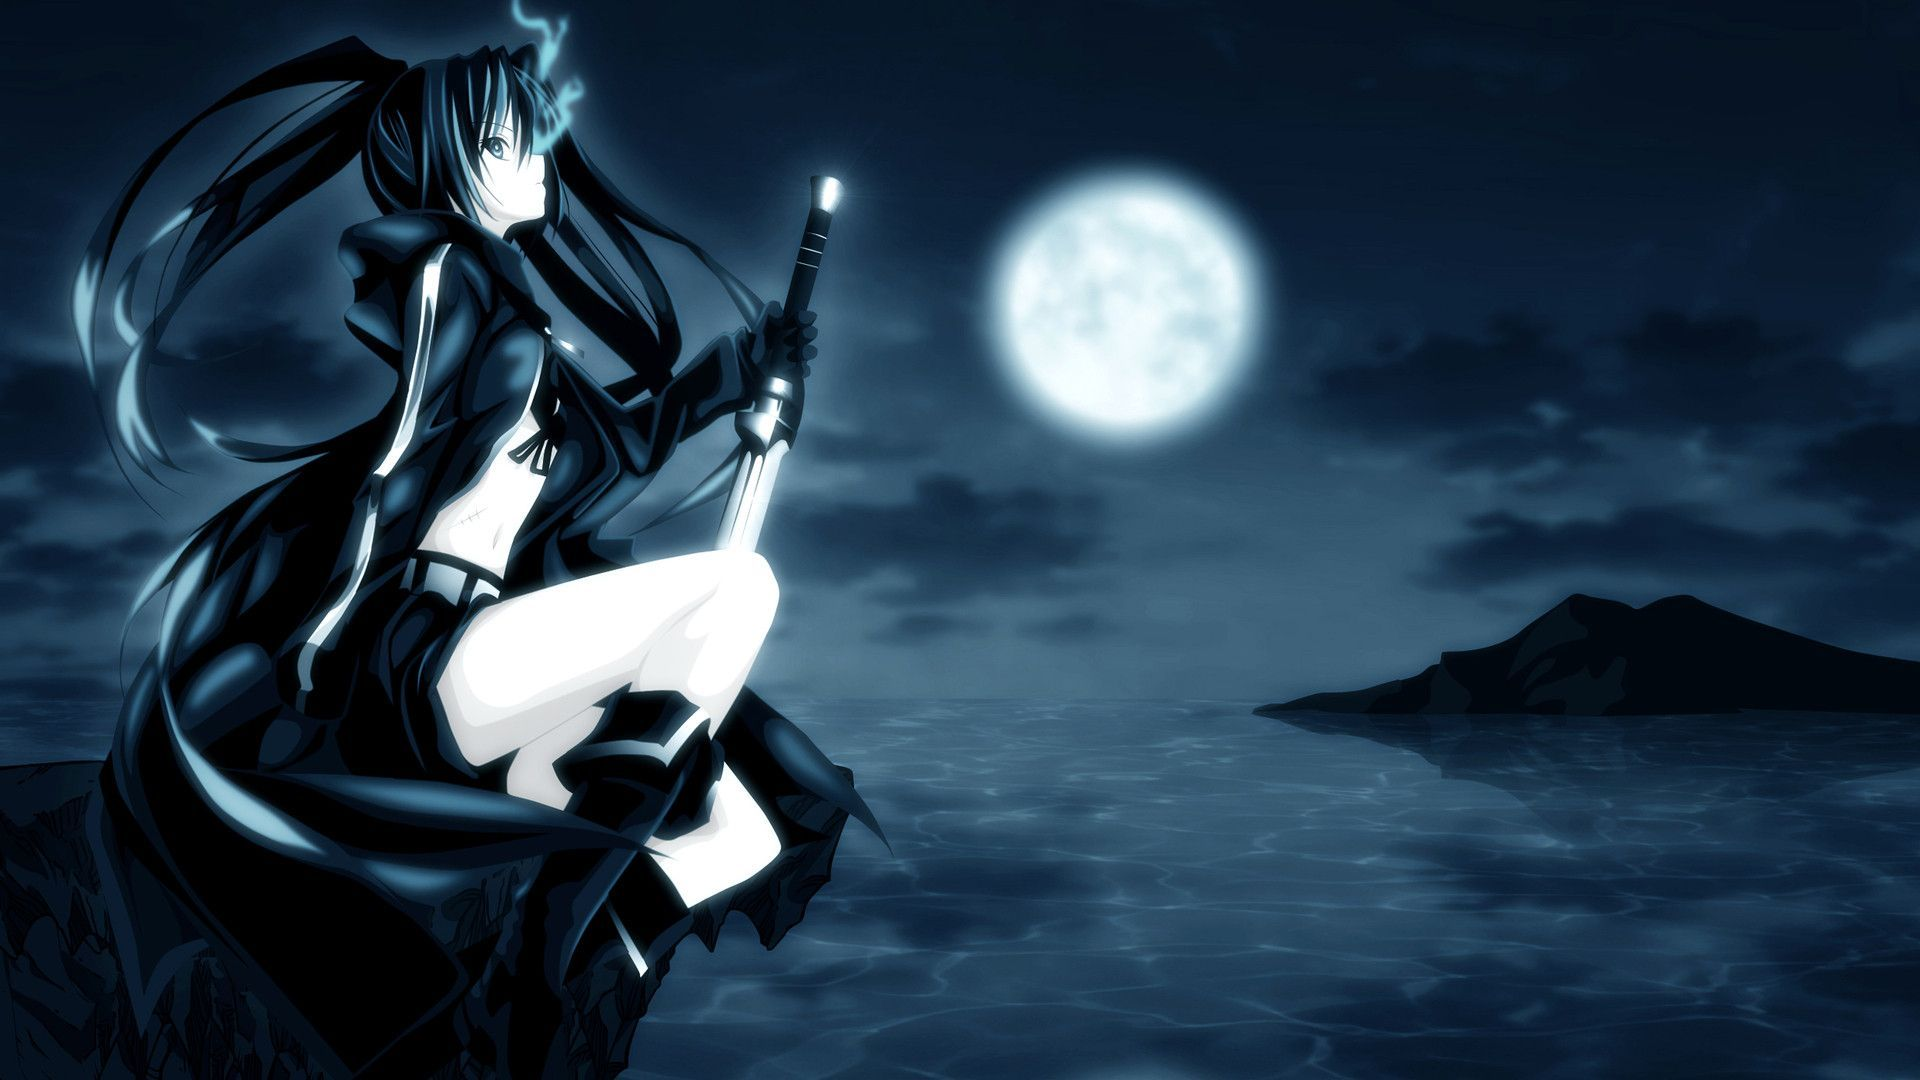 Cool Anime Wallpapers HD 1920x1080 6